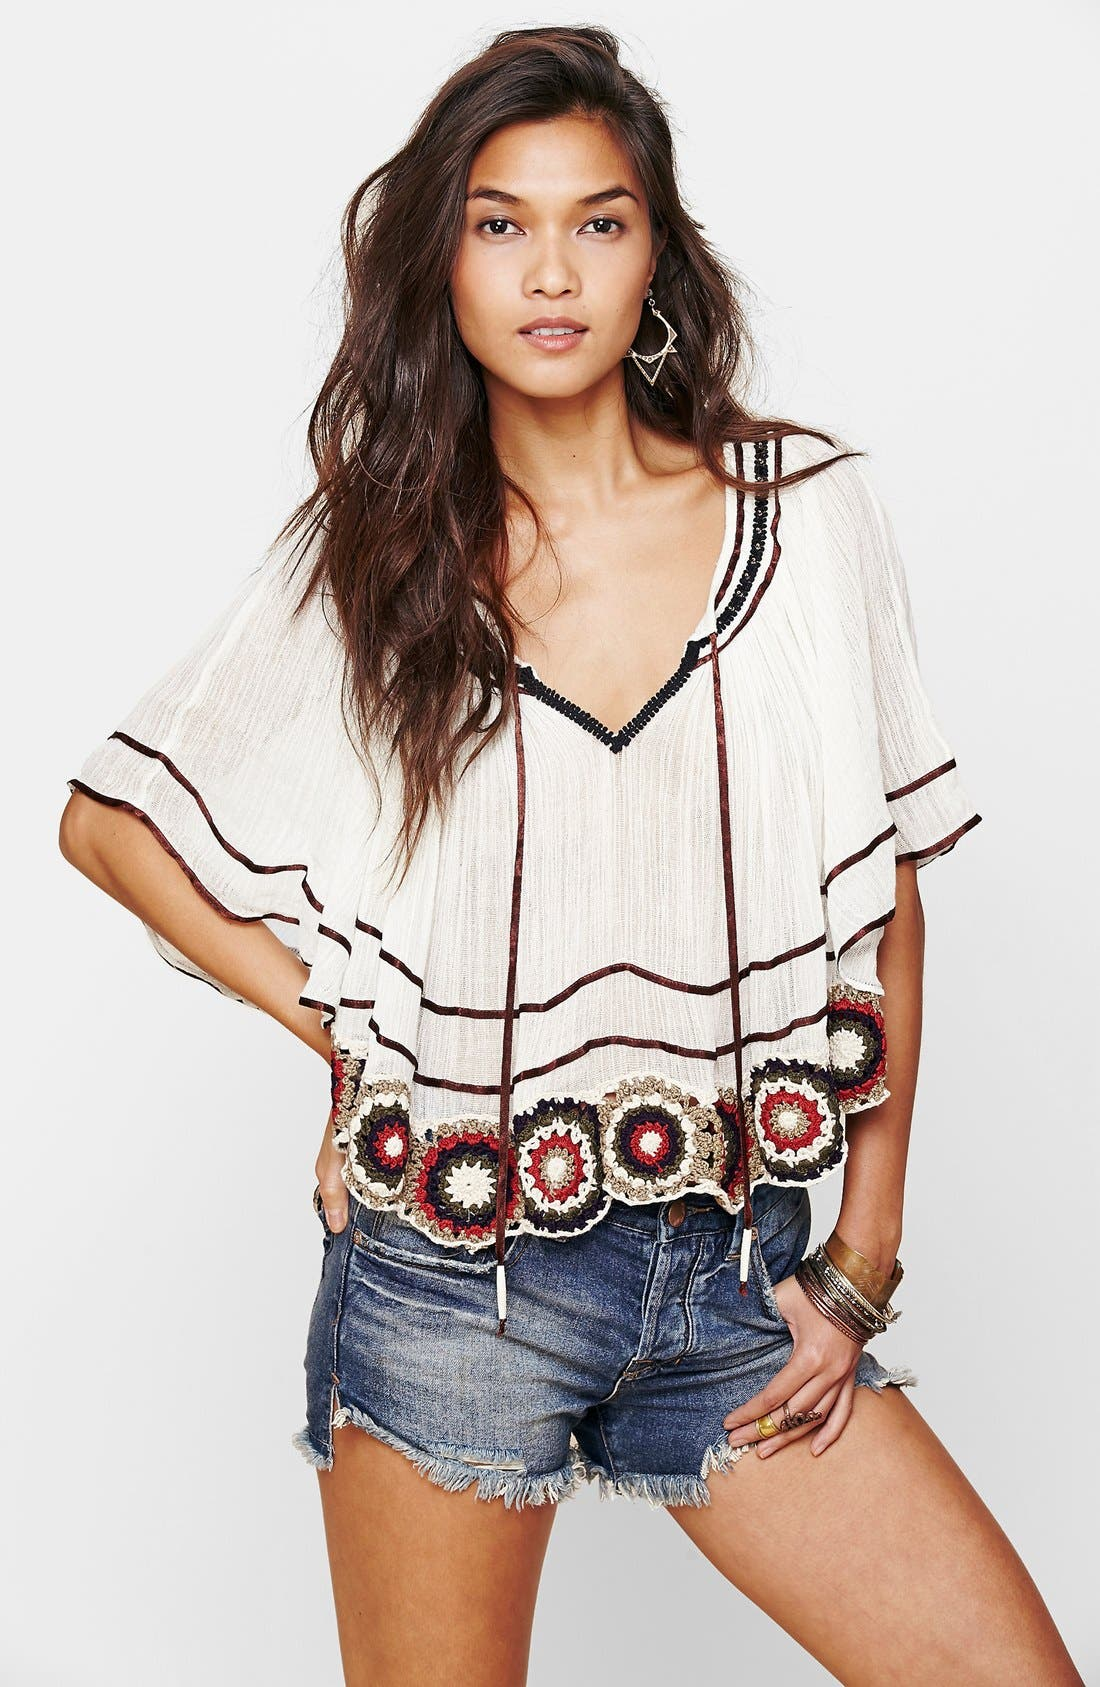 Alternate Image 1 Selected - Free People 'The Way She Moves' Crocheted Cotton Top